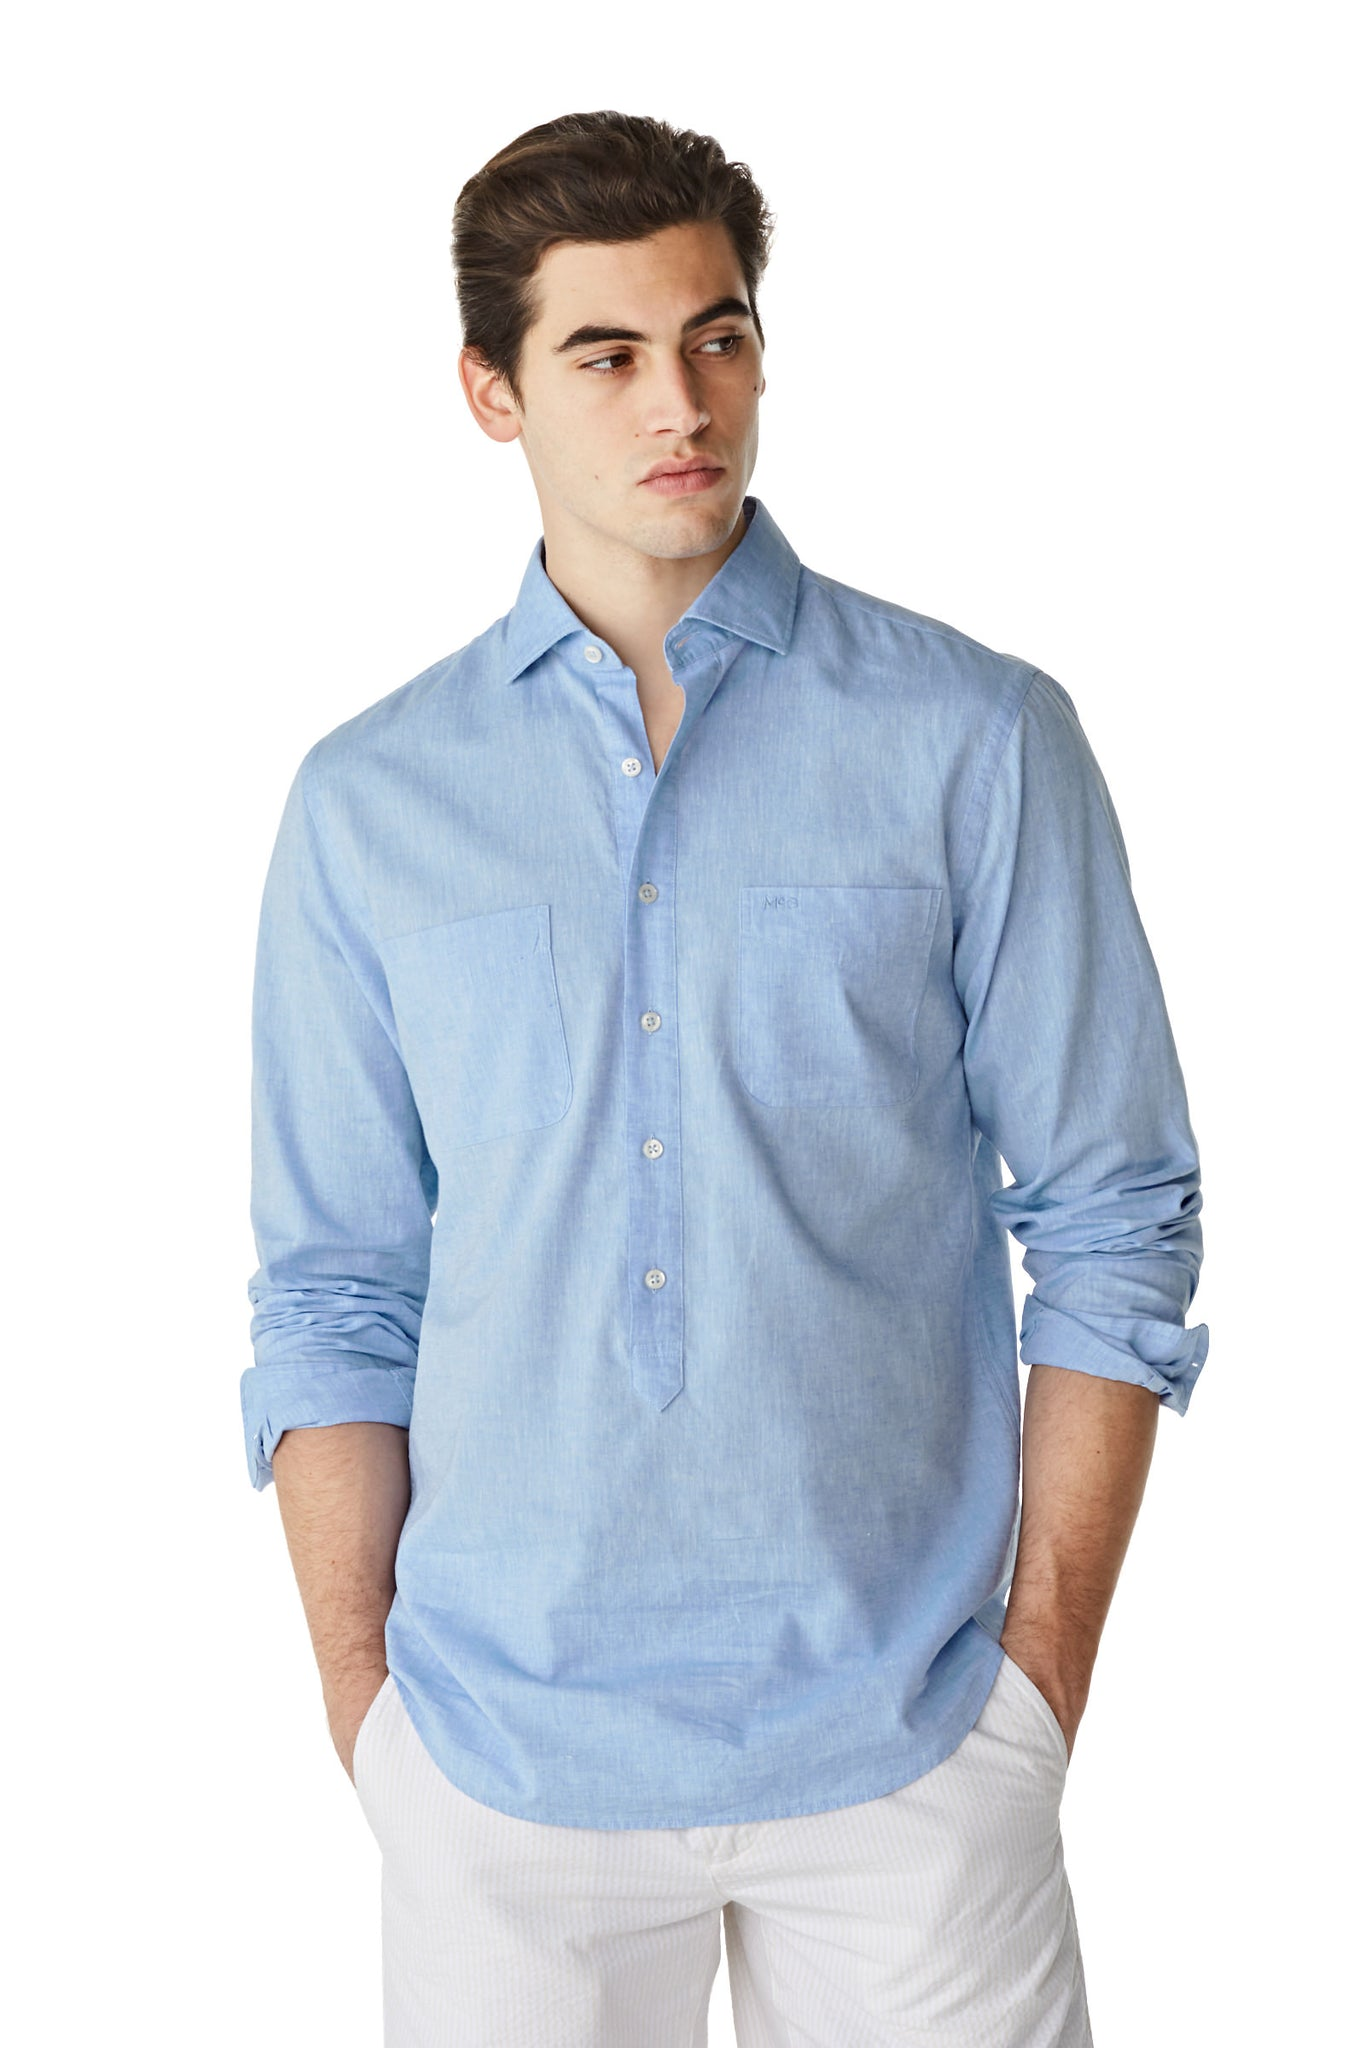 McG Regular fit Popover shirt cotton and linen blend